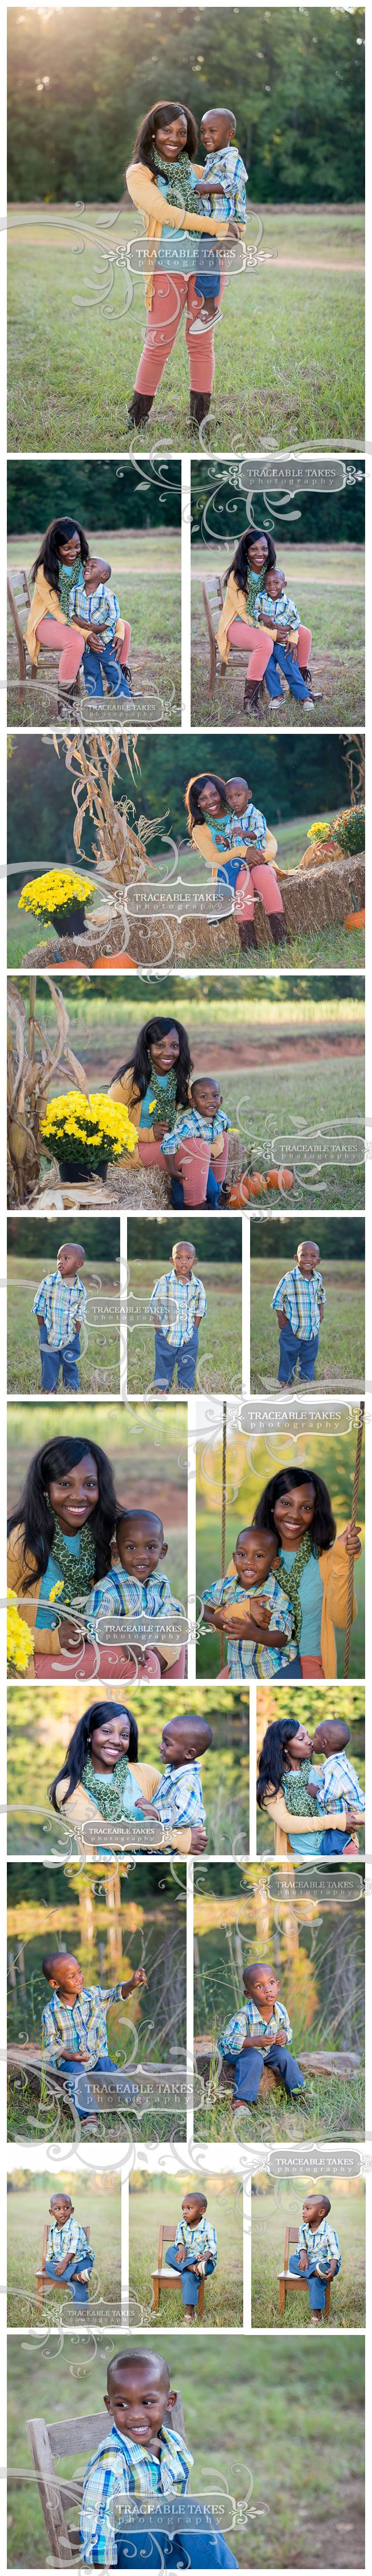 Mommy & Me Fall Photo Shoot